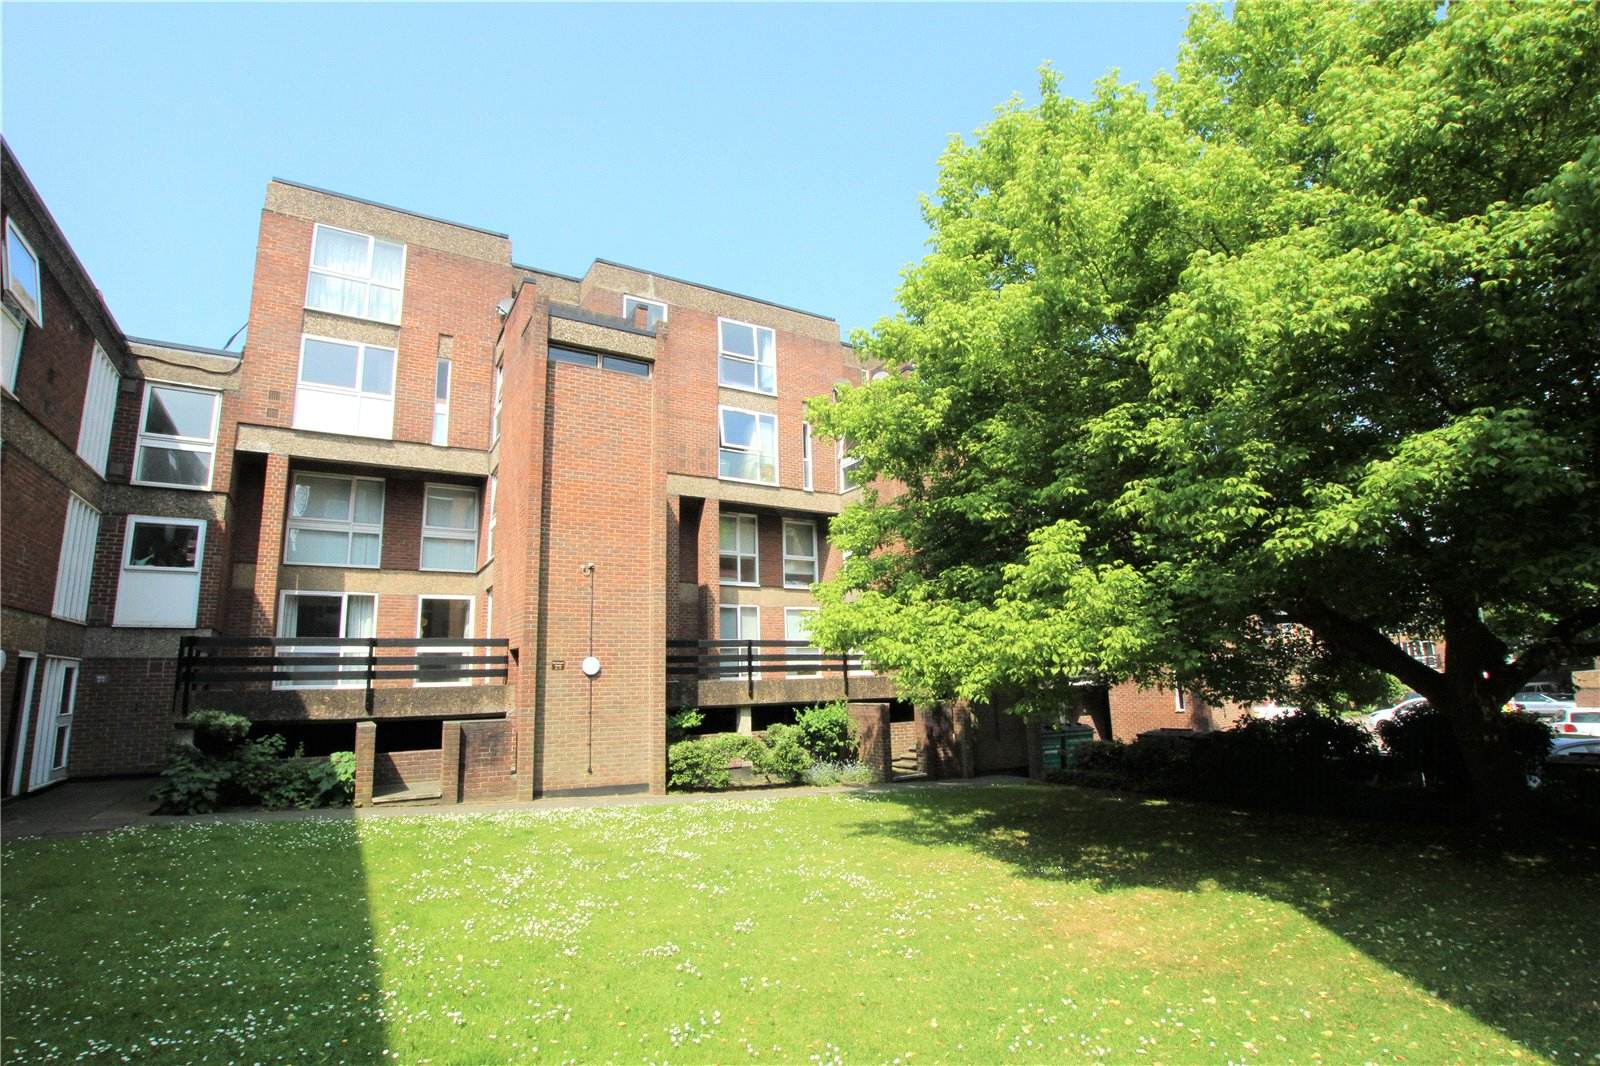 Hornbeam House, Manor Road, Sidcup, Kent, DA15